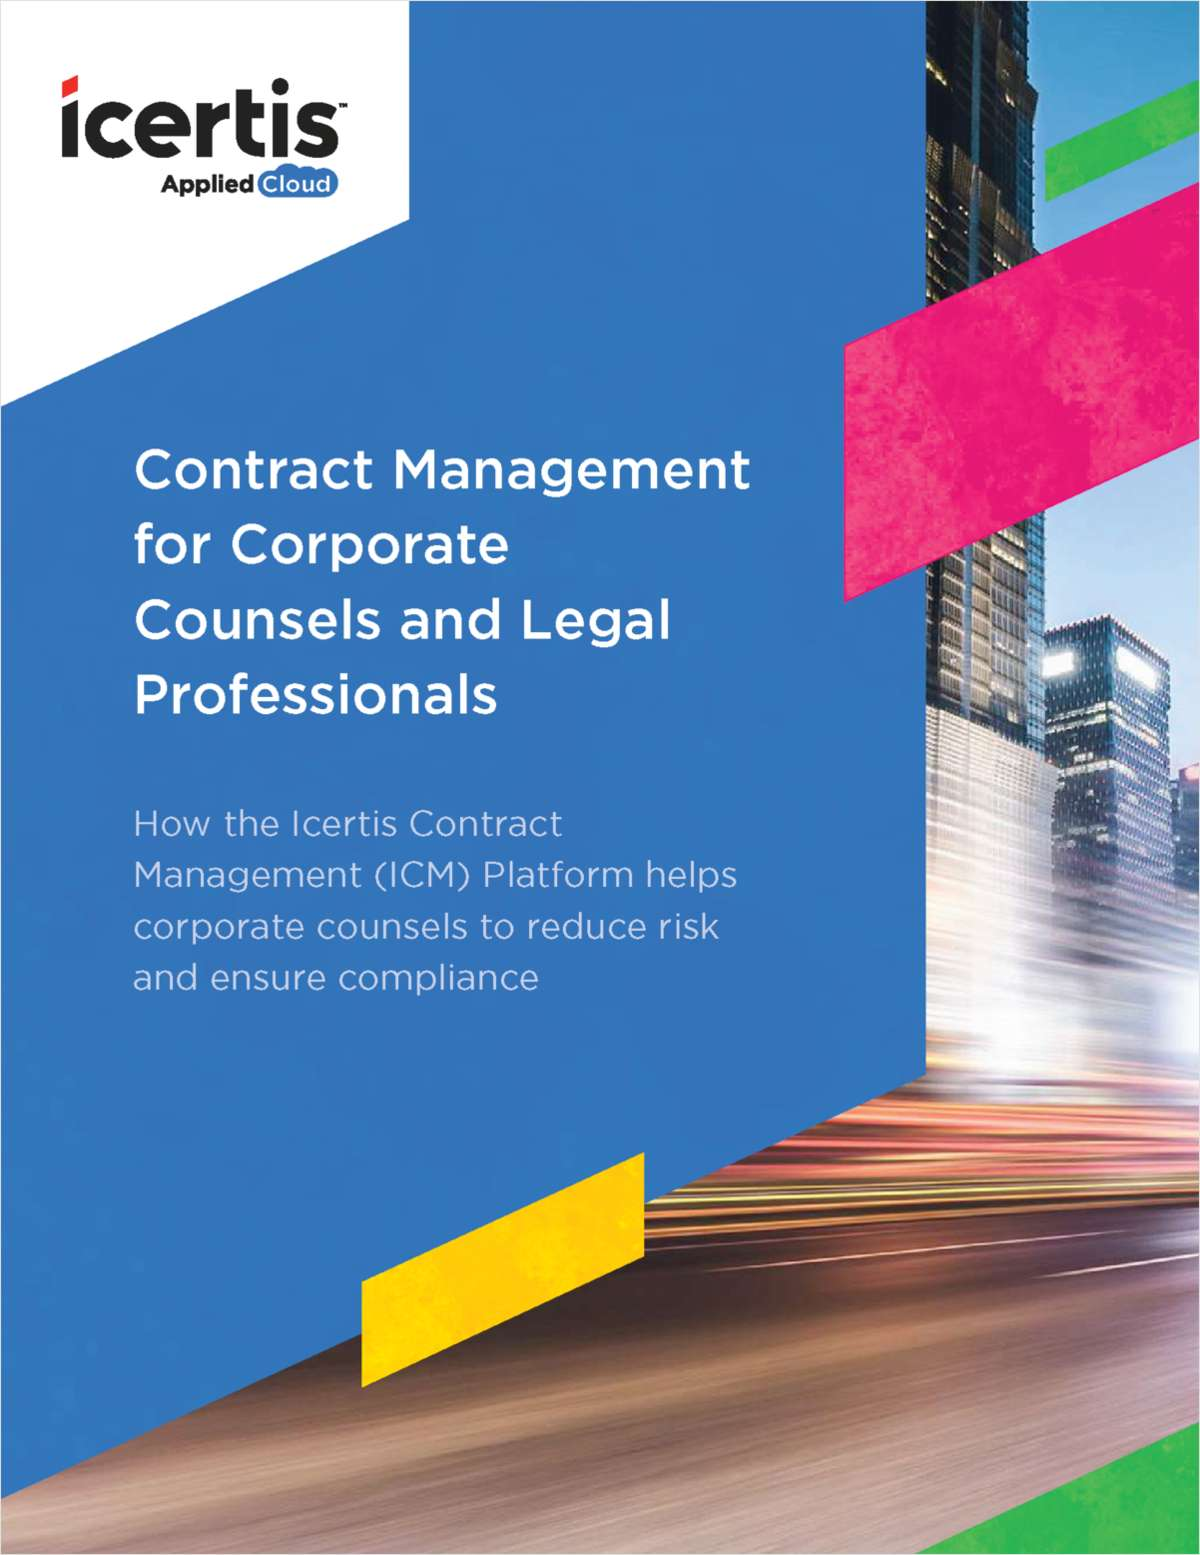 Contract Management for Corporate Counsels and Legal Professionals